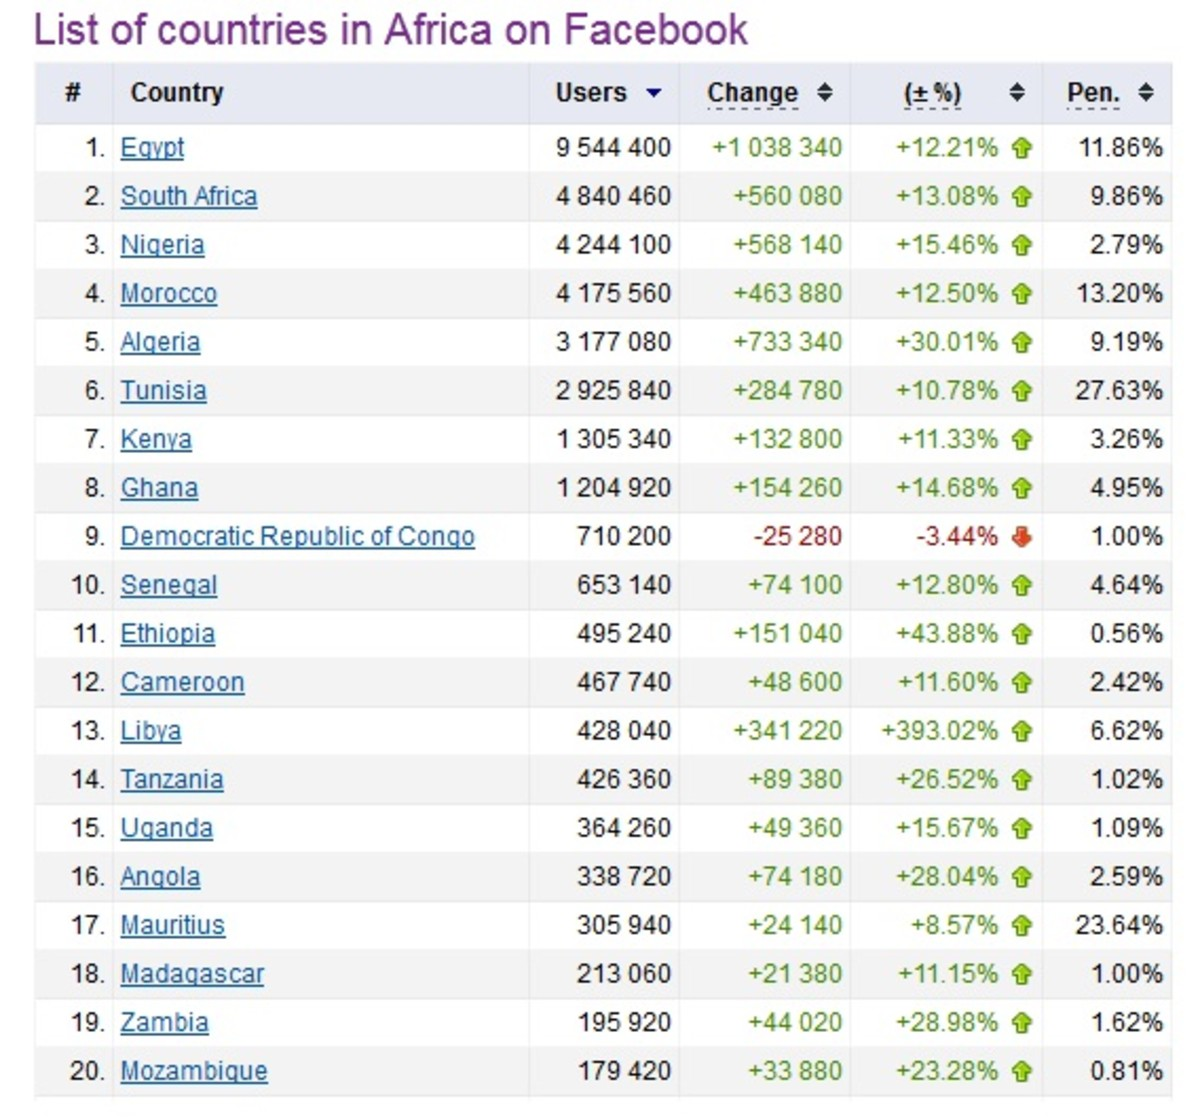 List of countries in Africa on Facebook